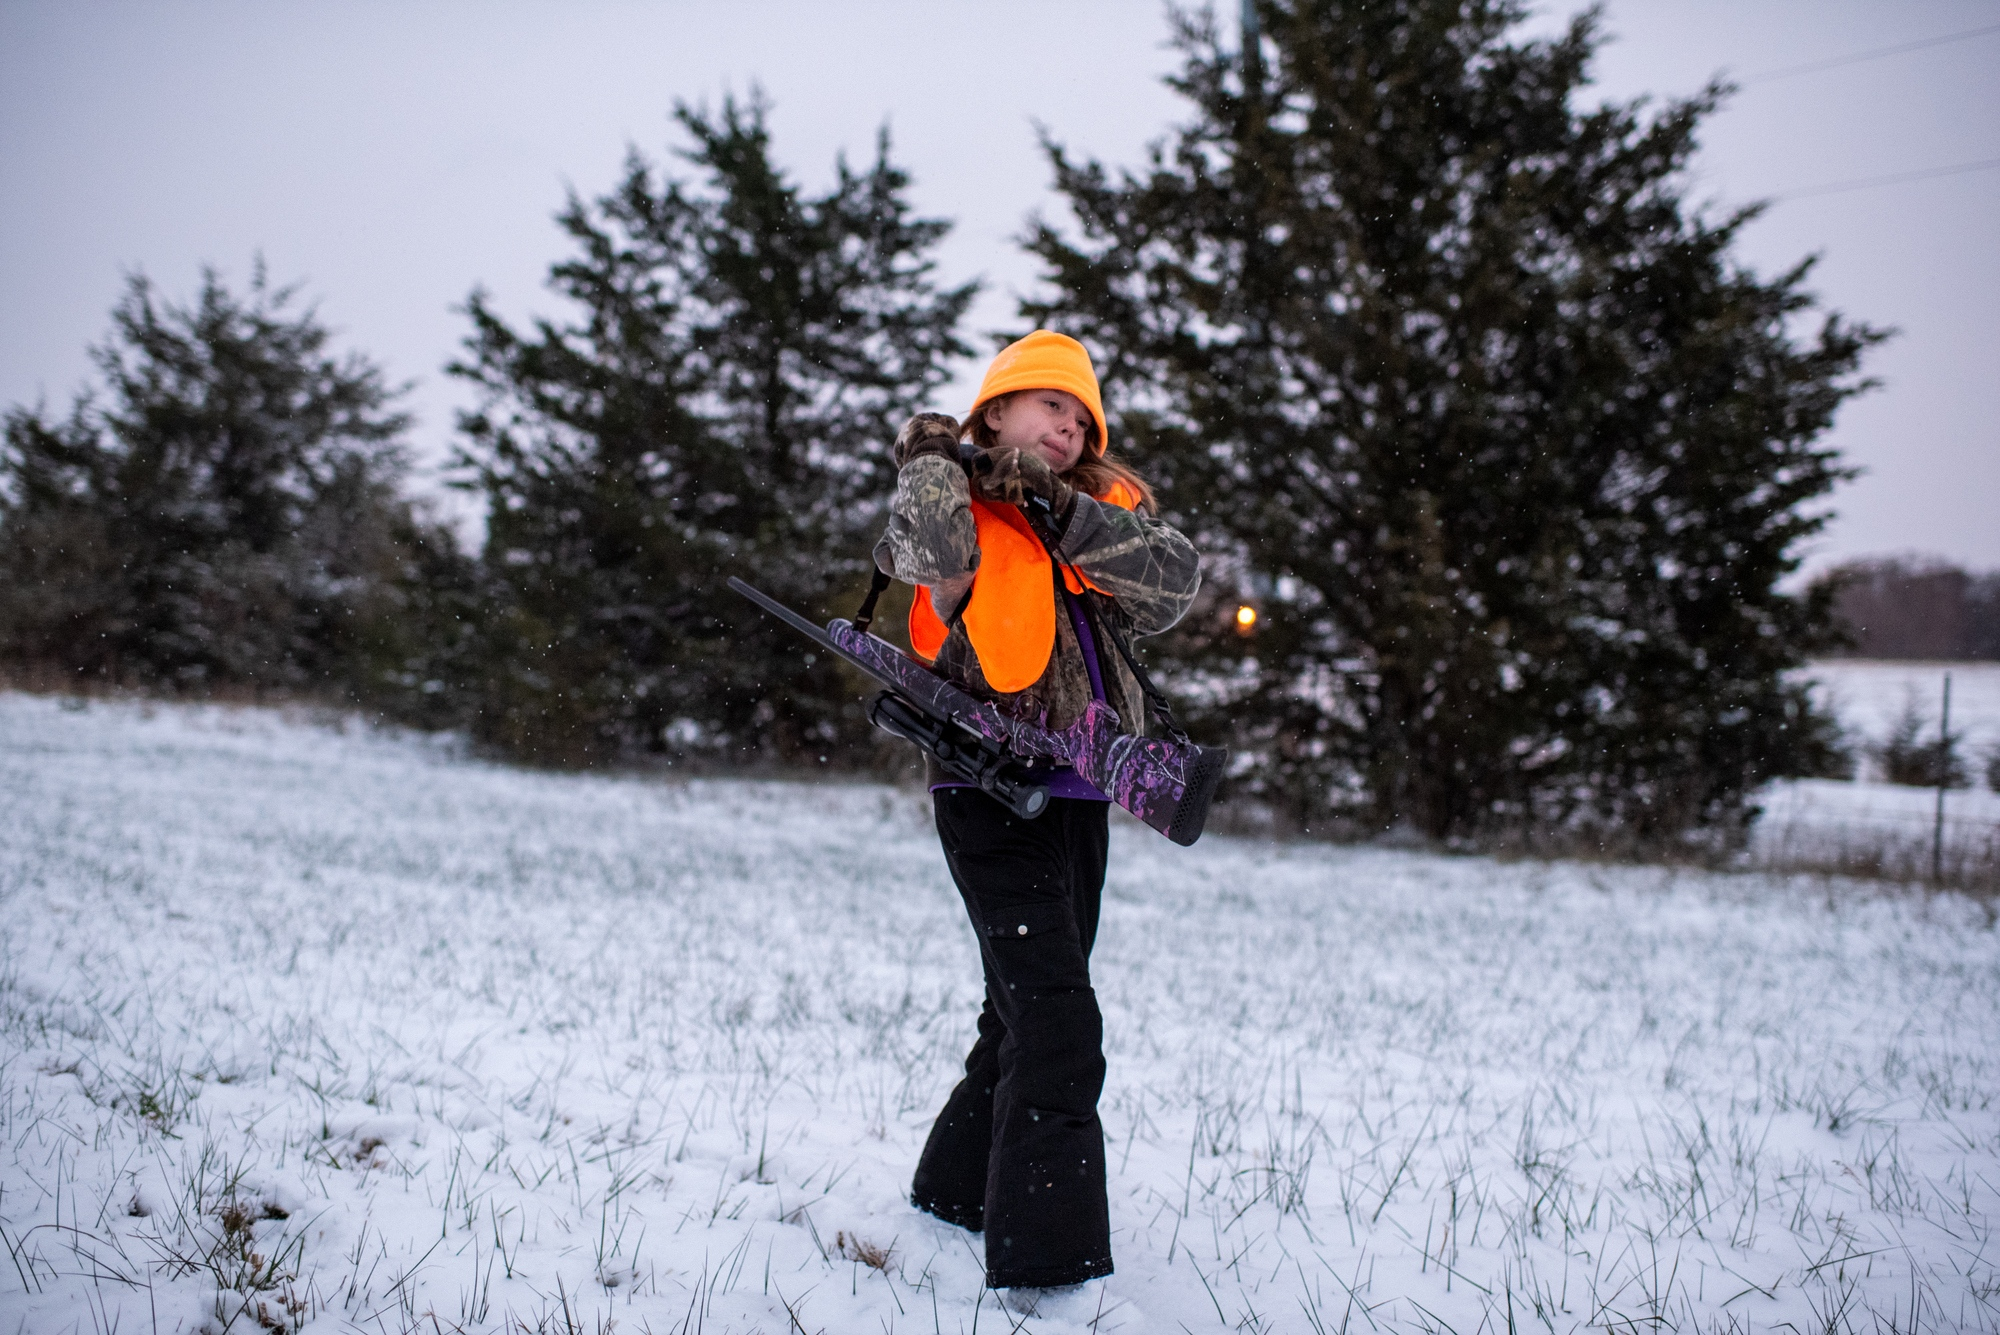 Callie Jennings shoulders her rifle after an afternoon of hunting on her family's land. Callie didn't see any deer that day but said she's glad for the experience even though she didn't get anything. Michael Jennings said he hopes he's taught her skills she'll want to pass on to her kids someday.